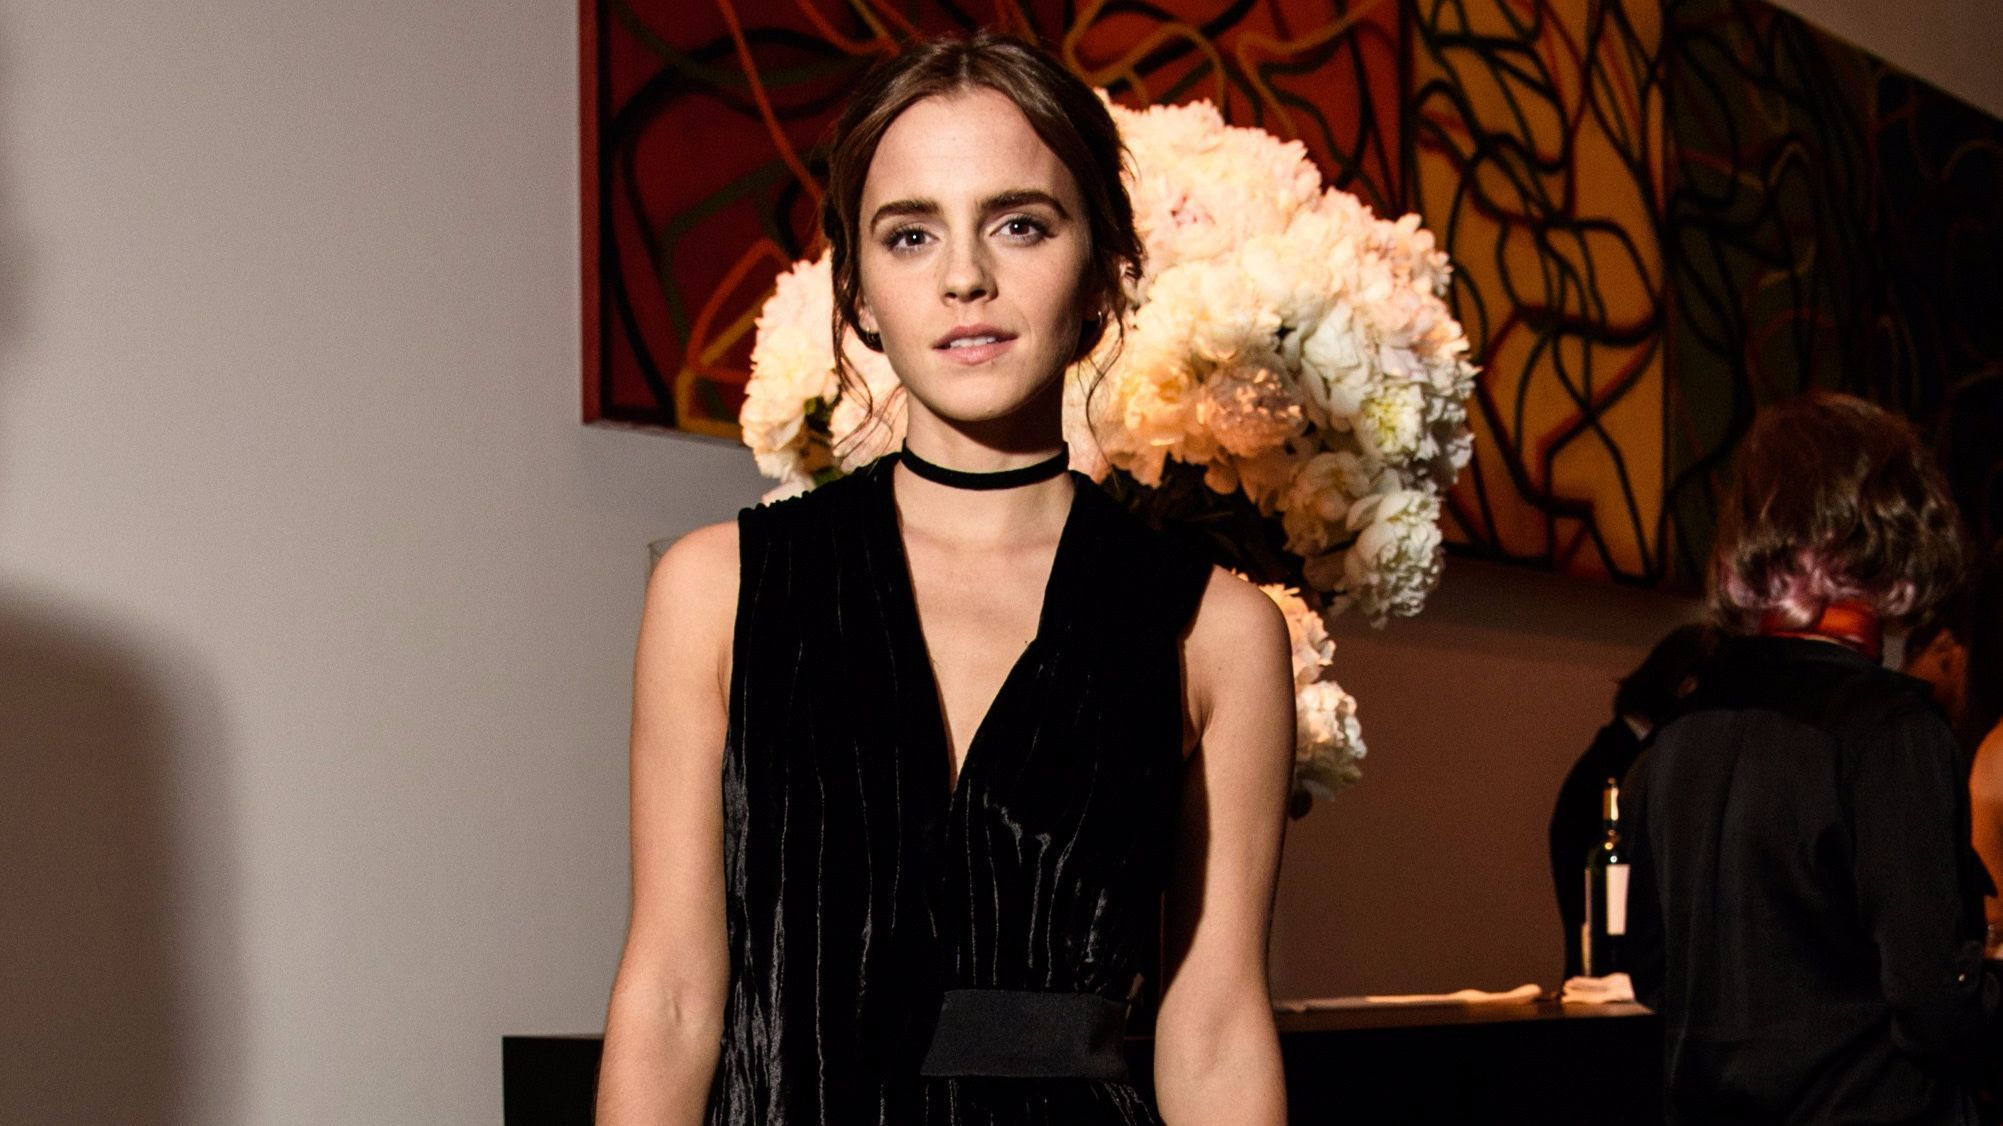 Emma Watson Tracks Her Looks From 'Beauty And The Beast